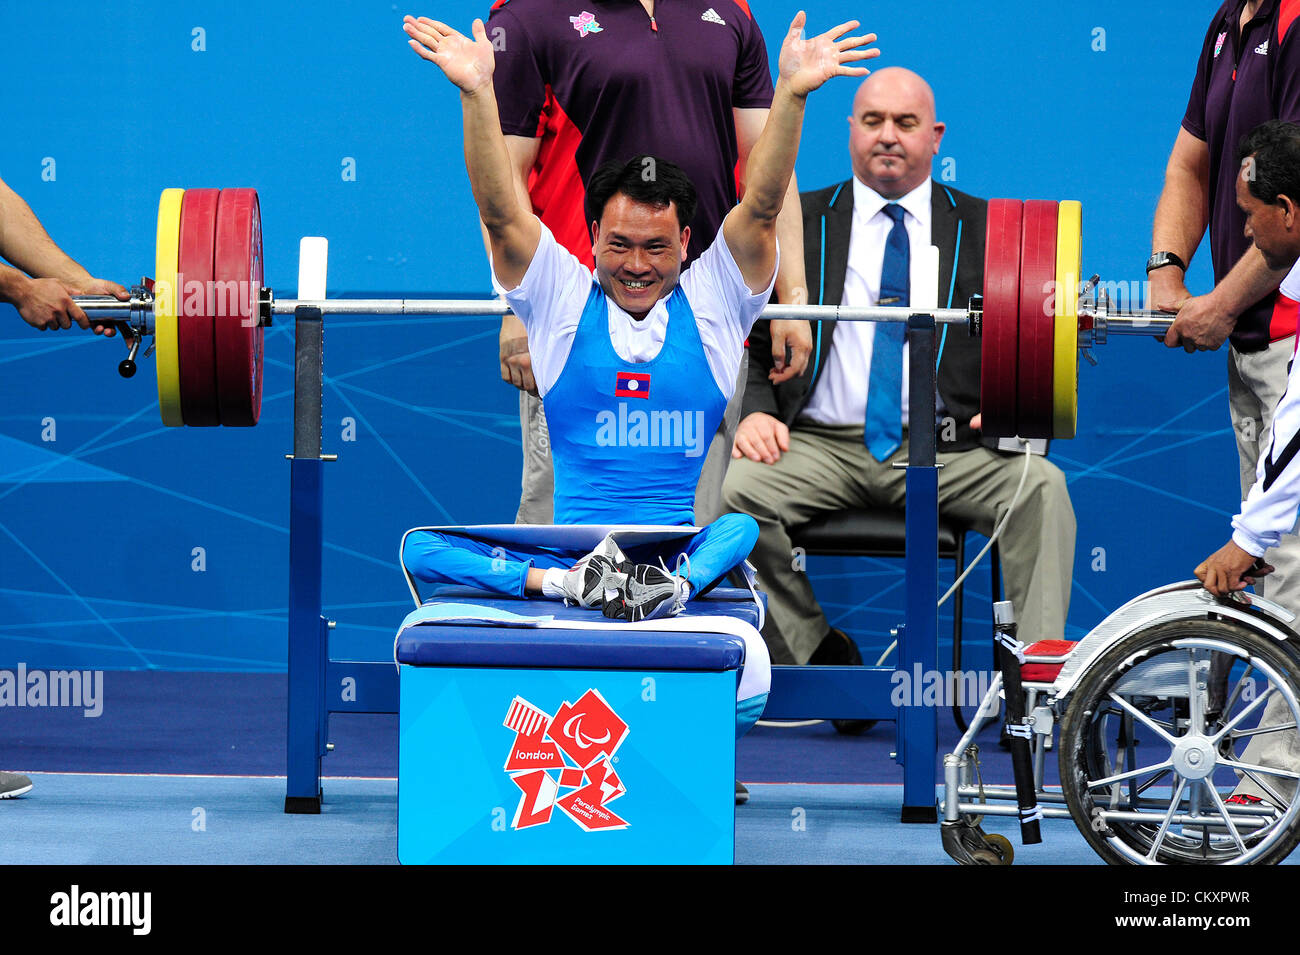 30.08.2012 Stratford, England. Eay Simay of Laos in action during the Men's -48Kg Powerlifting on day 1 of the - Stock Image